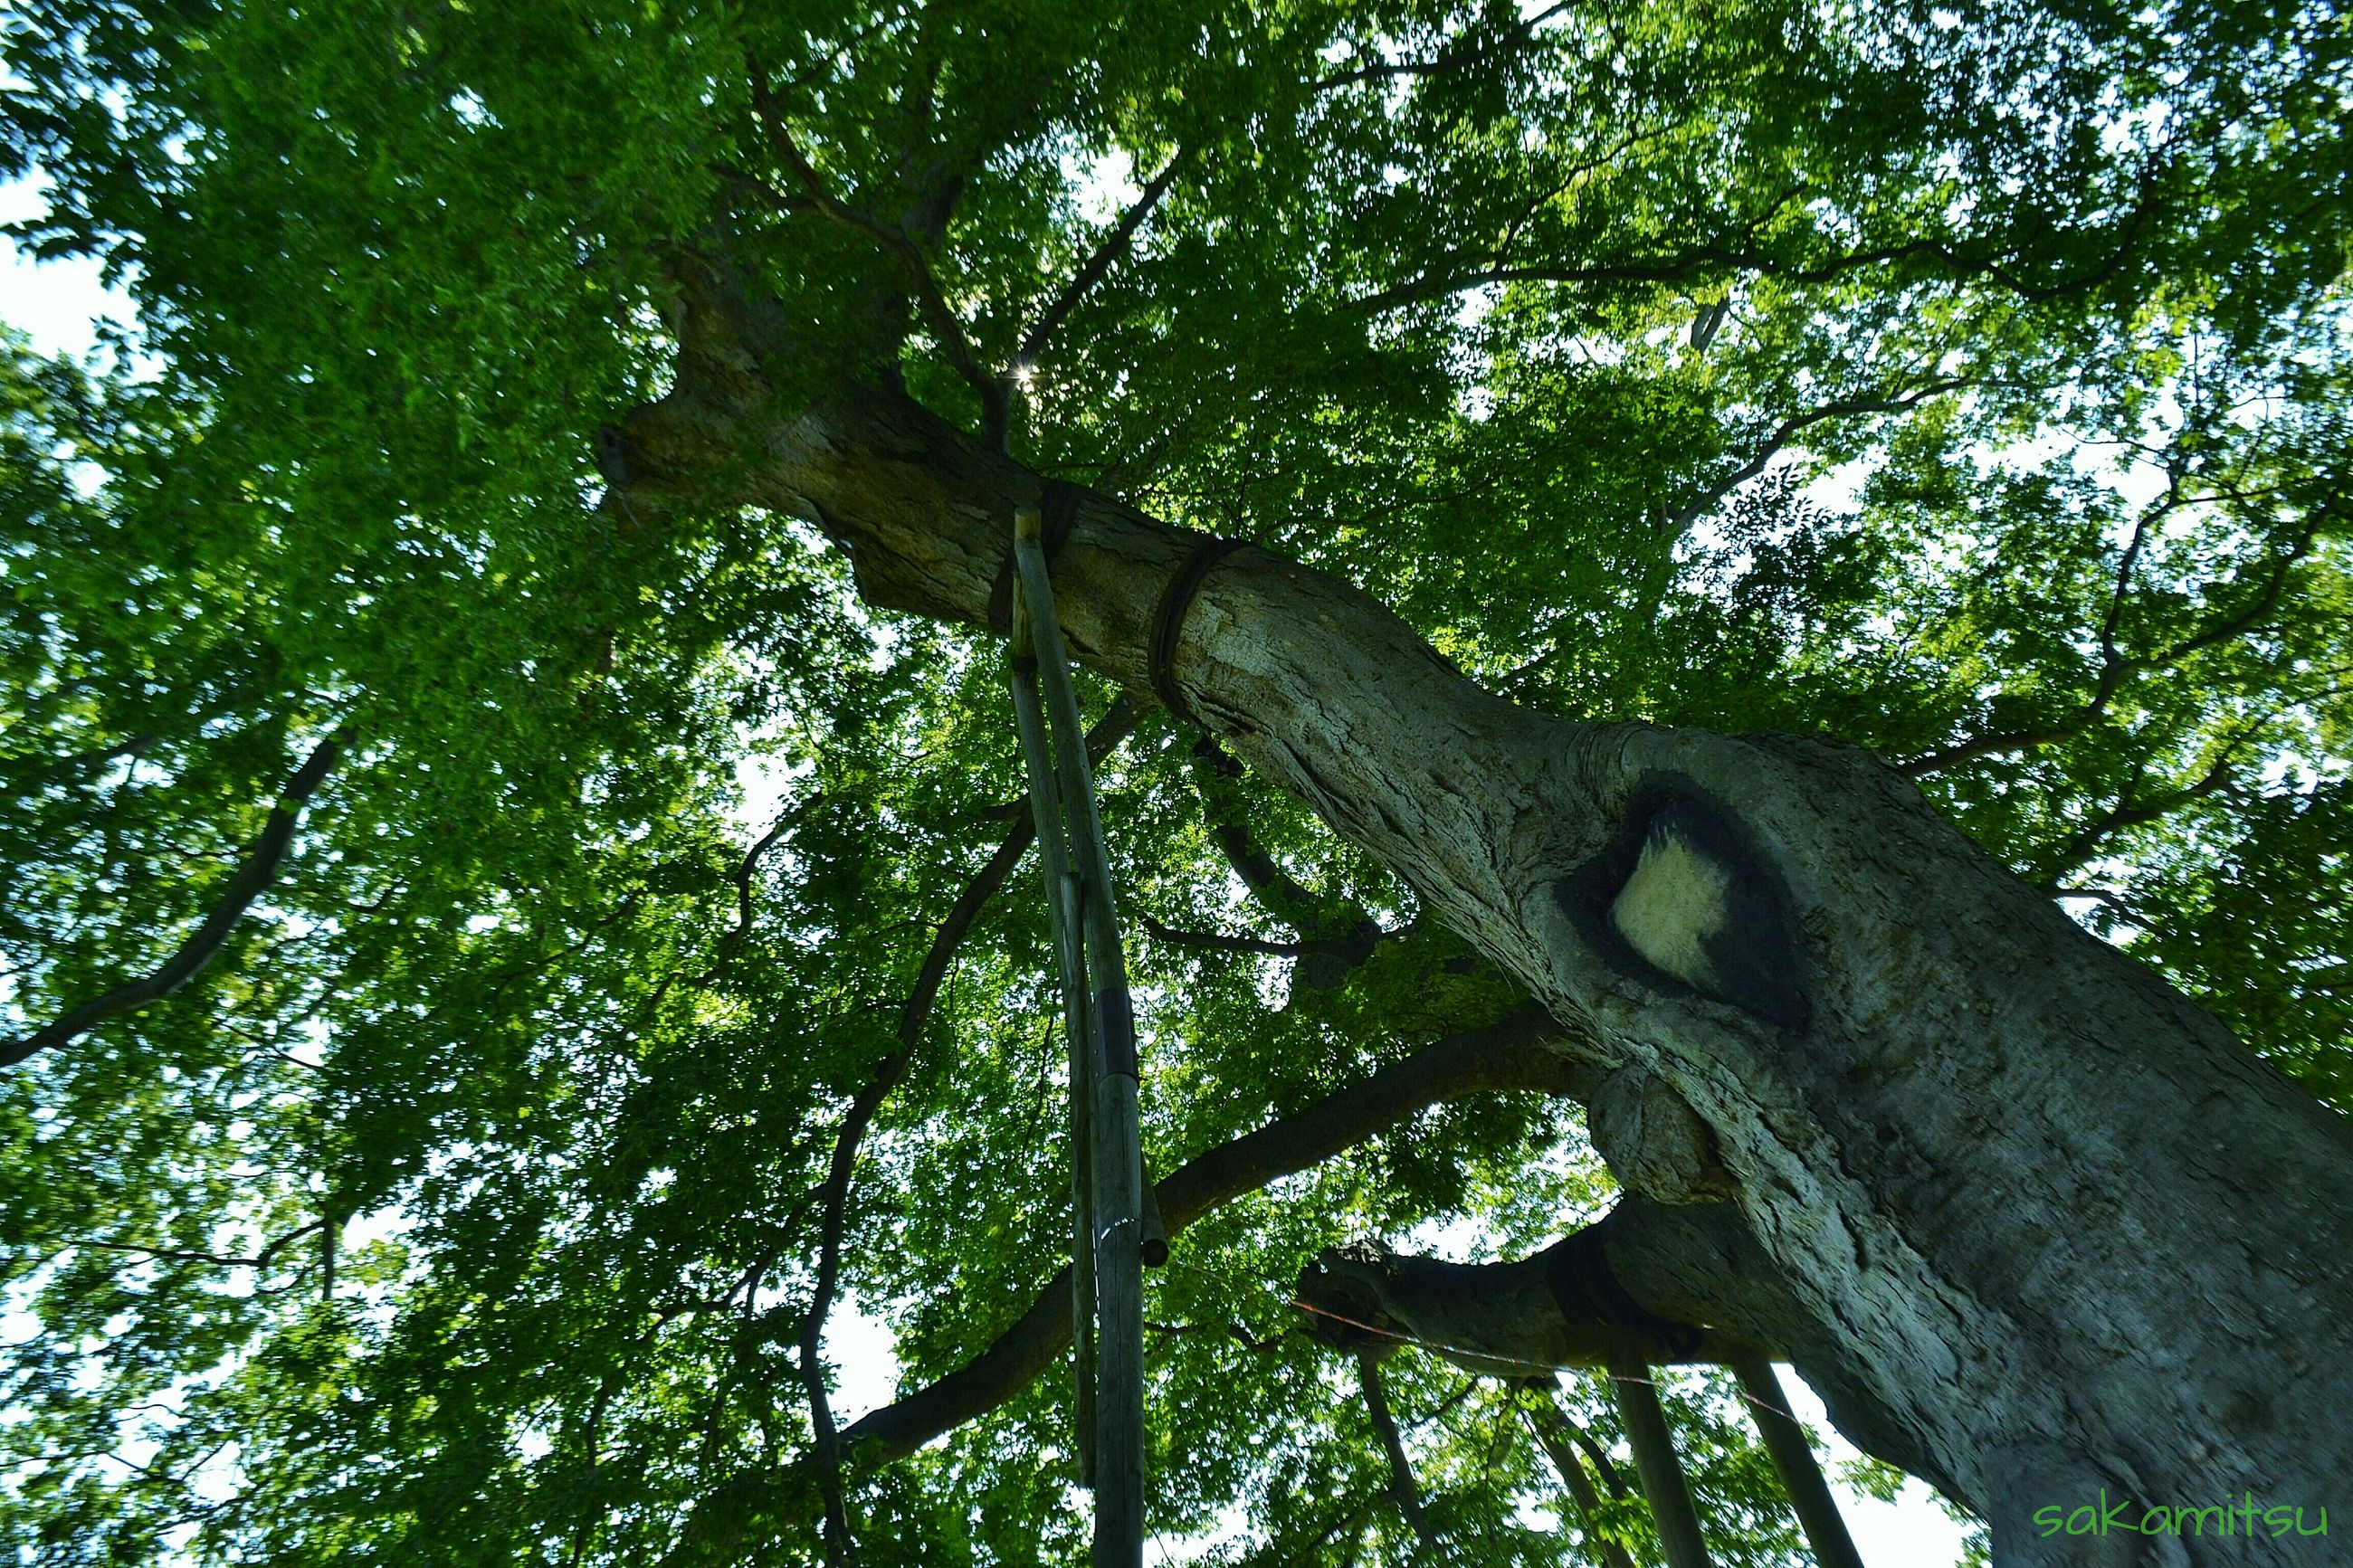 tree, low angle view, branch, growth, tree trunk, tranquility, nature, forest, green color, beauty in nature, day, sky, lush foliage, outdoors, scenics, no people, tranquil scene, woodland, leaf, sunlight